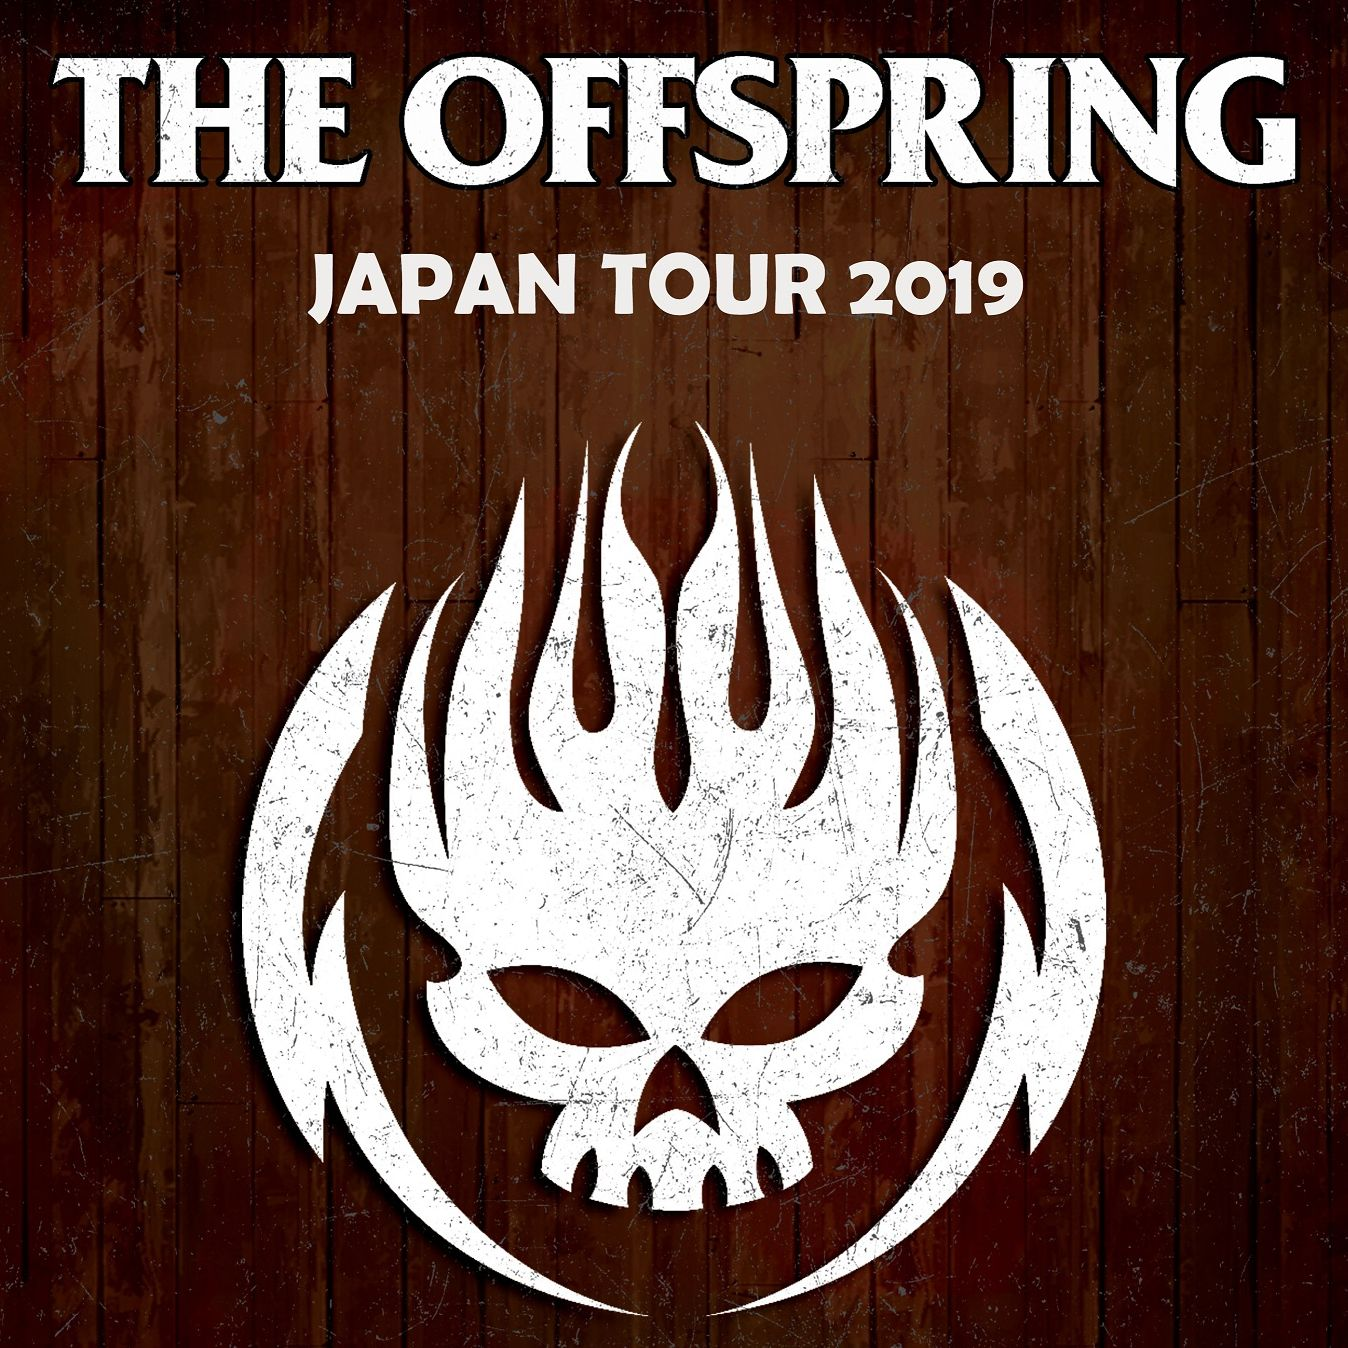 THE OFFSPRING JAPAN TOUR 2019